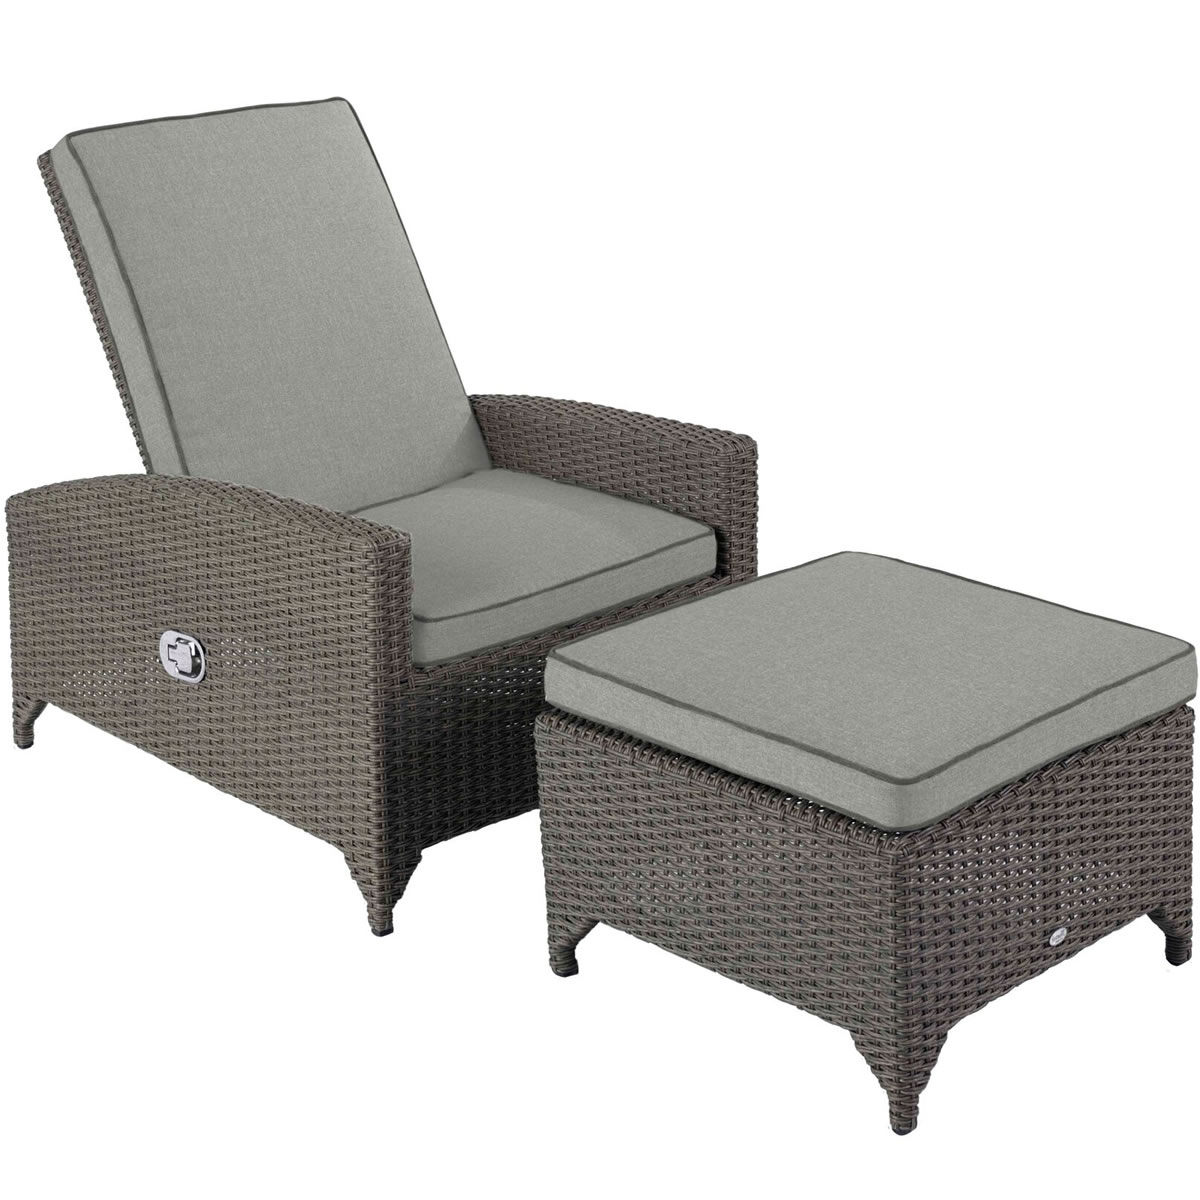 Hartman Madison Weave Recliner Chair With Footstool In